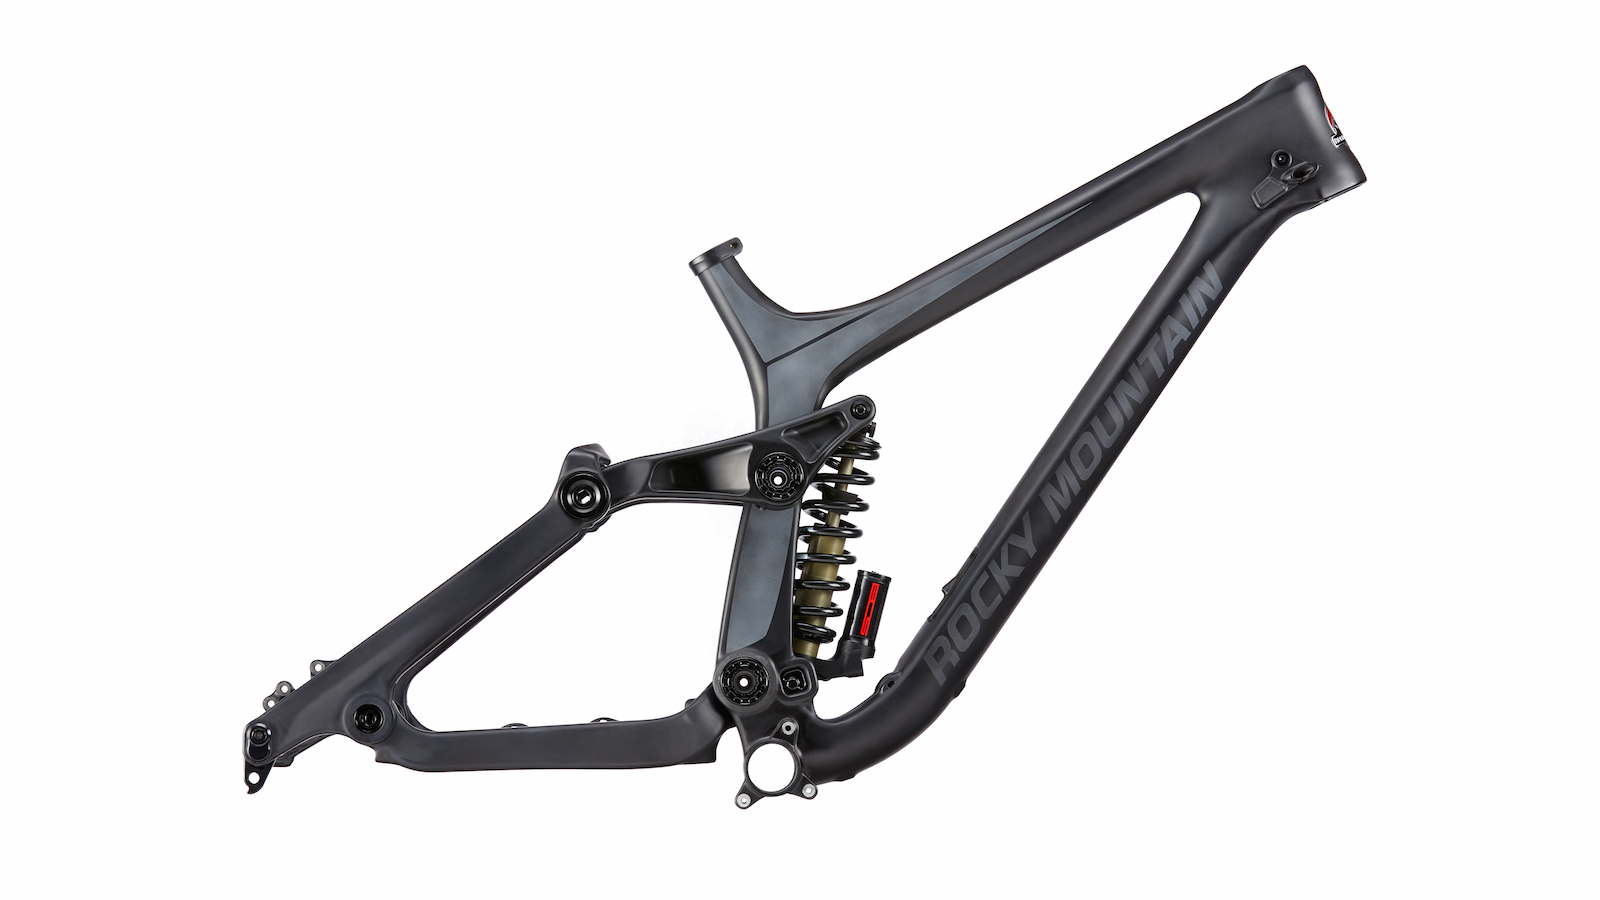 Maiden Unlimited Frame Only C1 (Black) side